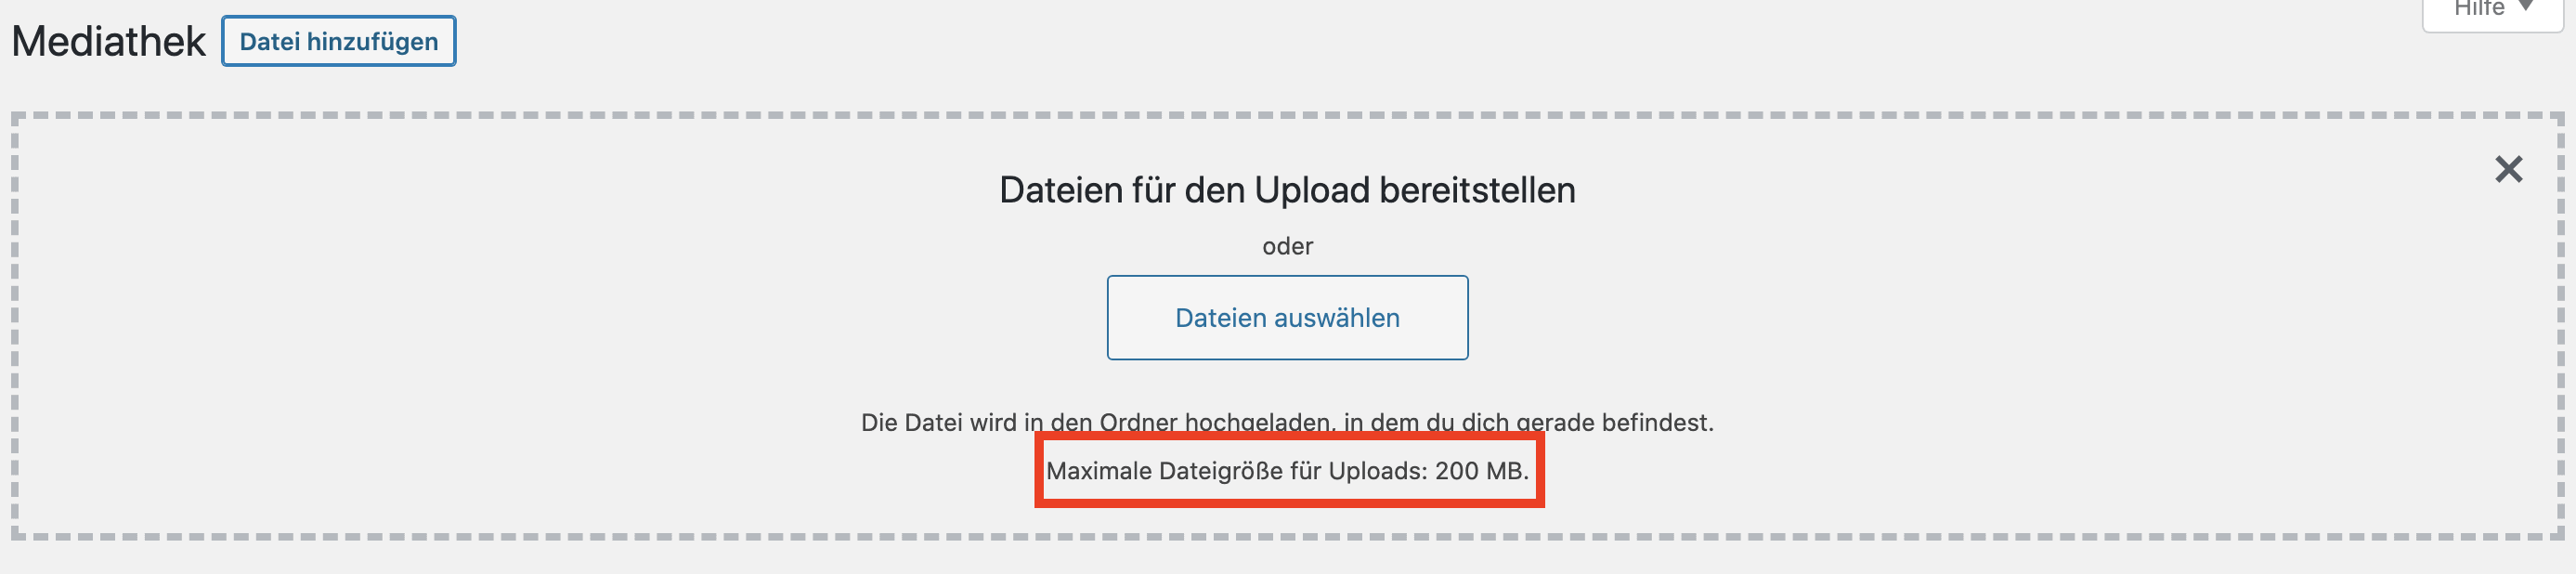 WordPress Upload Limit in der Mediathek prüfen